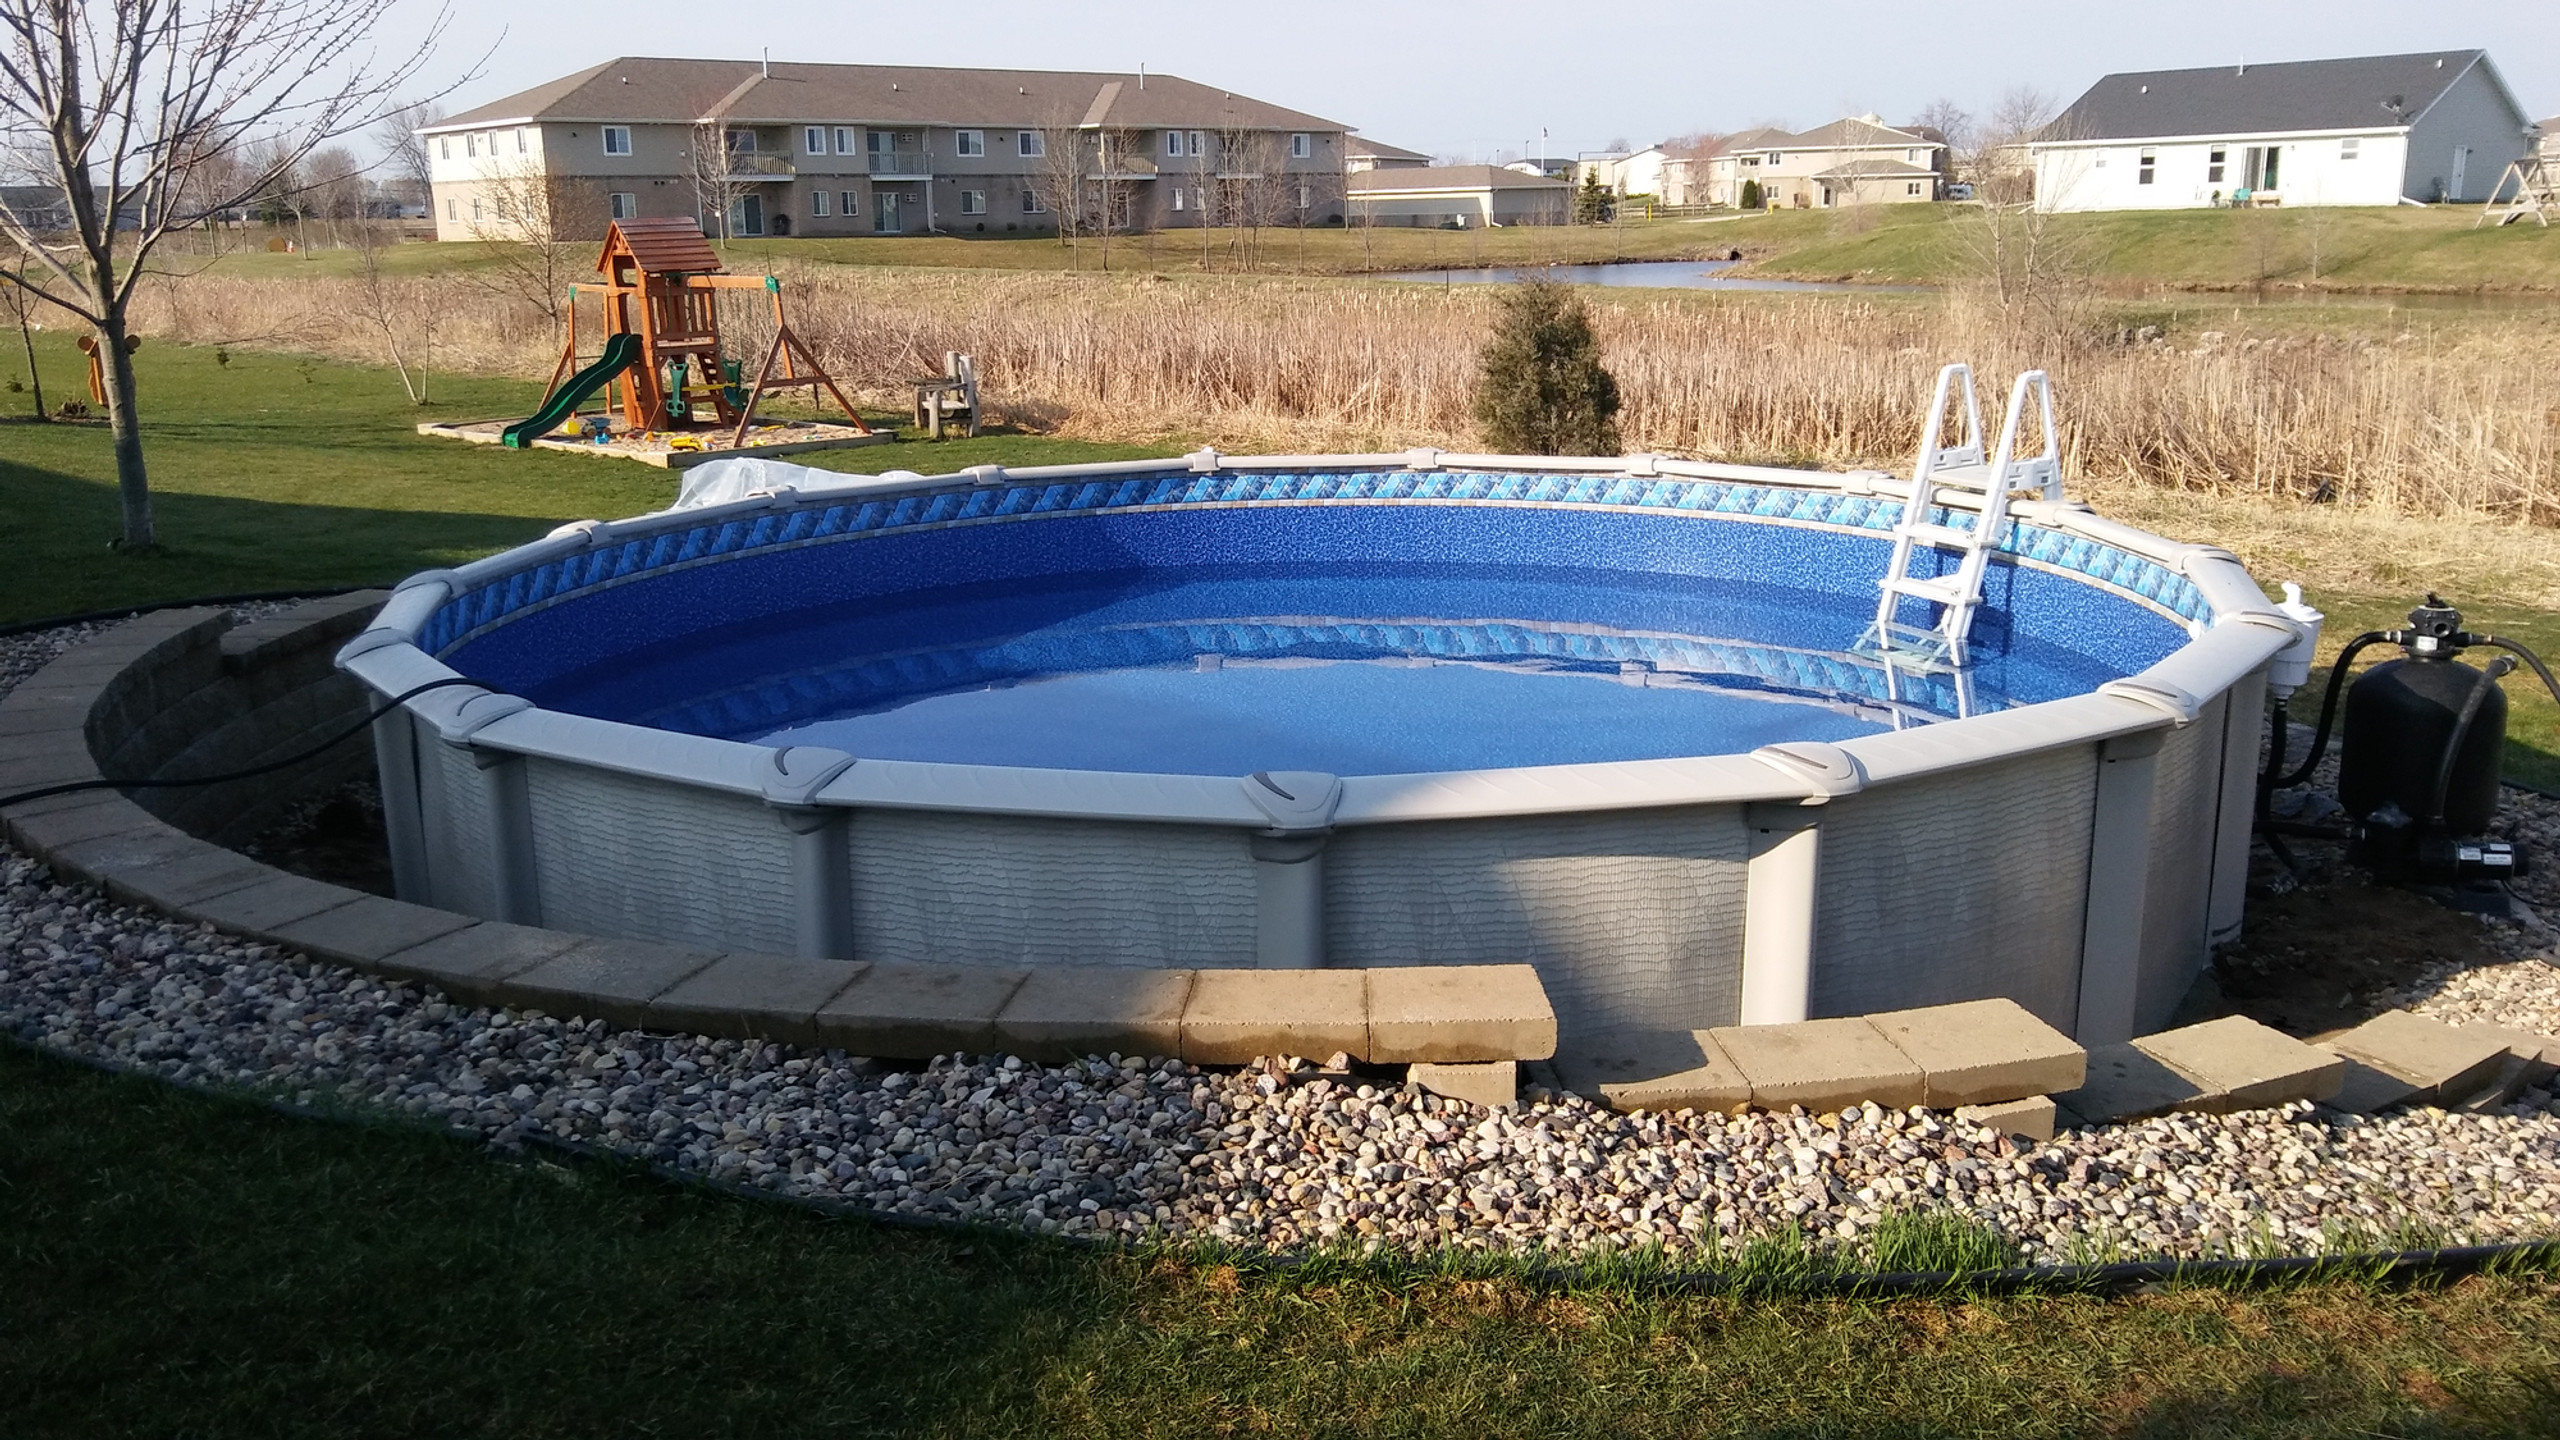 "Another beautiflu 27' Round Evolution Above Ground Pool from Pool Pros. This pool was another "" Pool Only"" Pakcage to replace a Brisbane Above Ground Pool purchased and built by Pool Team in Kaukauna WI."